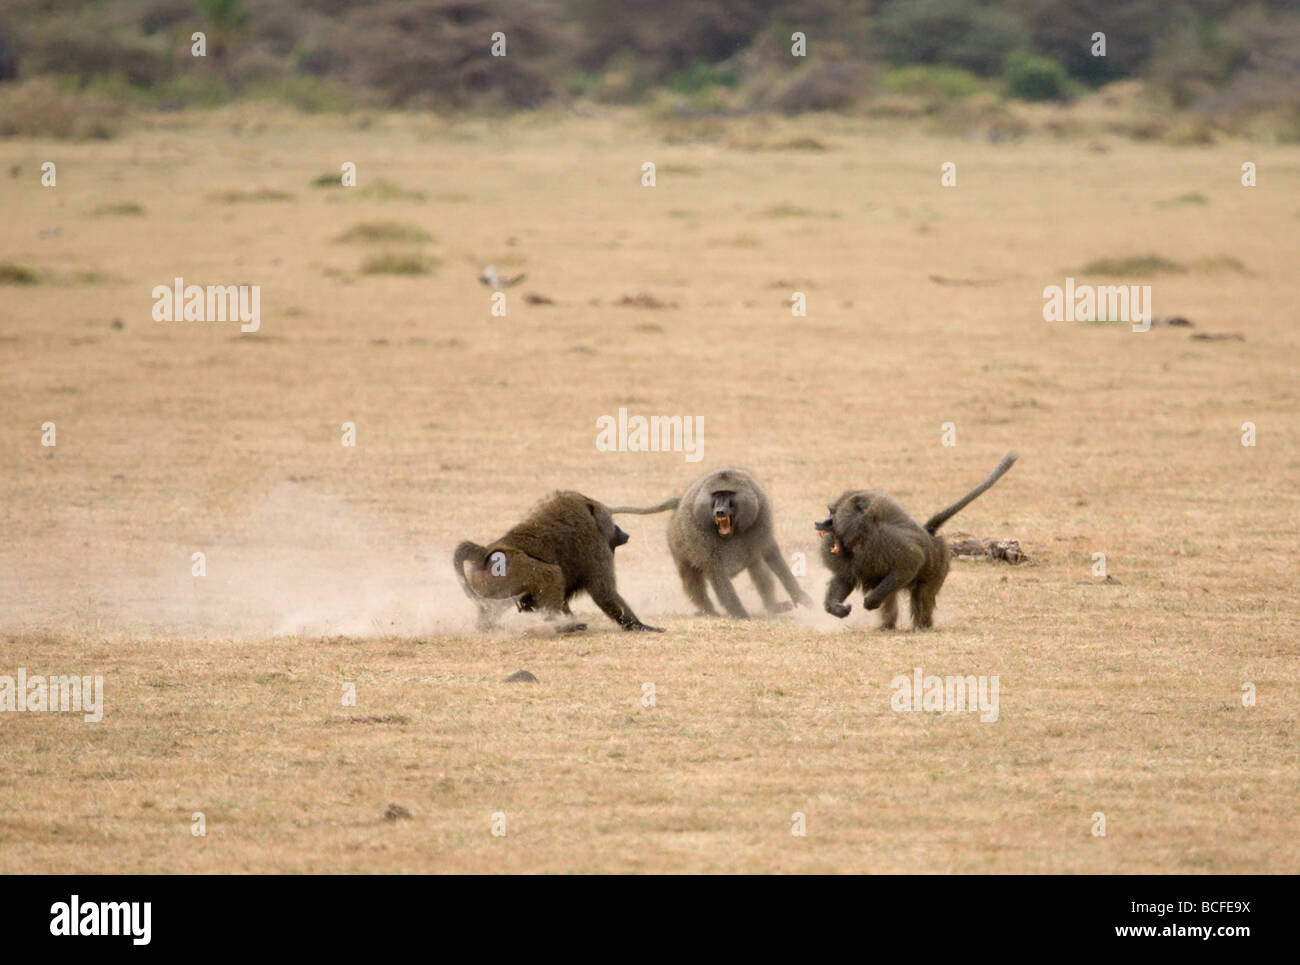 Papio sp. (Baboon), Lake Manyara National Park, Tanzania - Stock Image